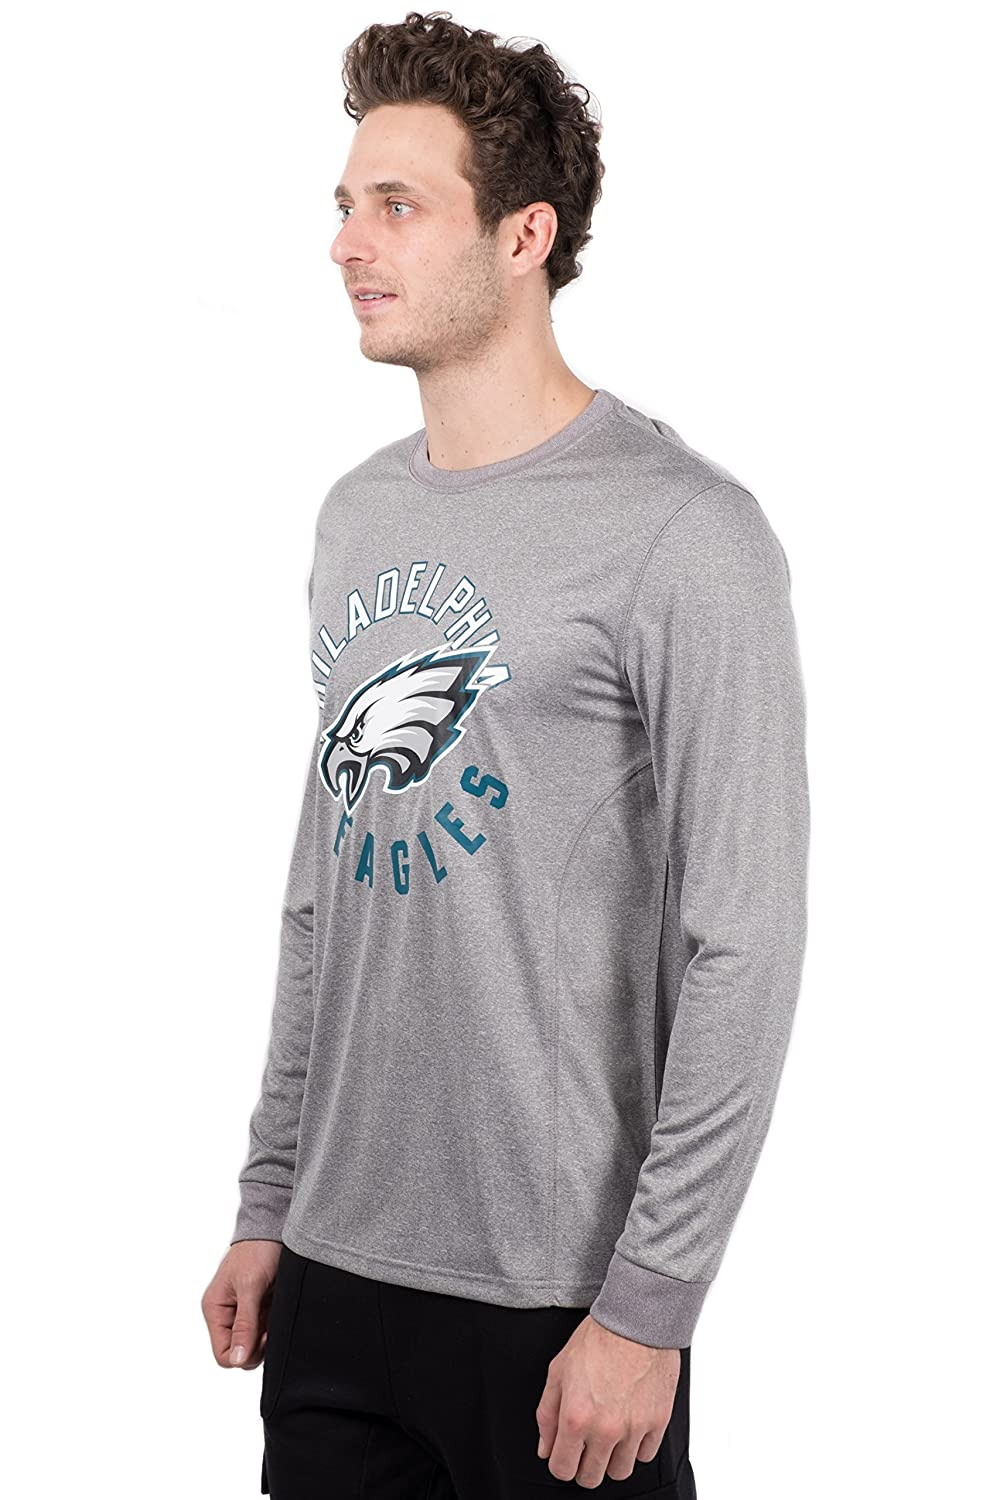 NFL Philadelphia Eagles Ultra Game Mens LS POLY CREW NECK TEE Small Heather Gray